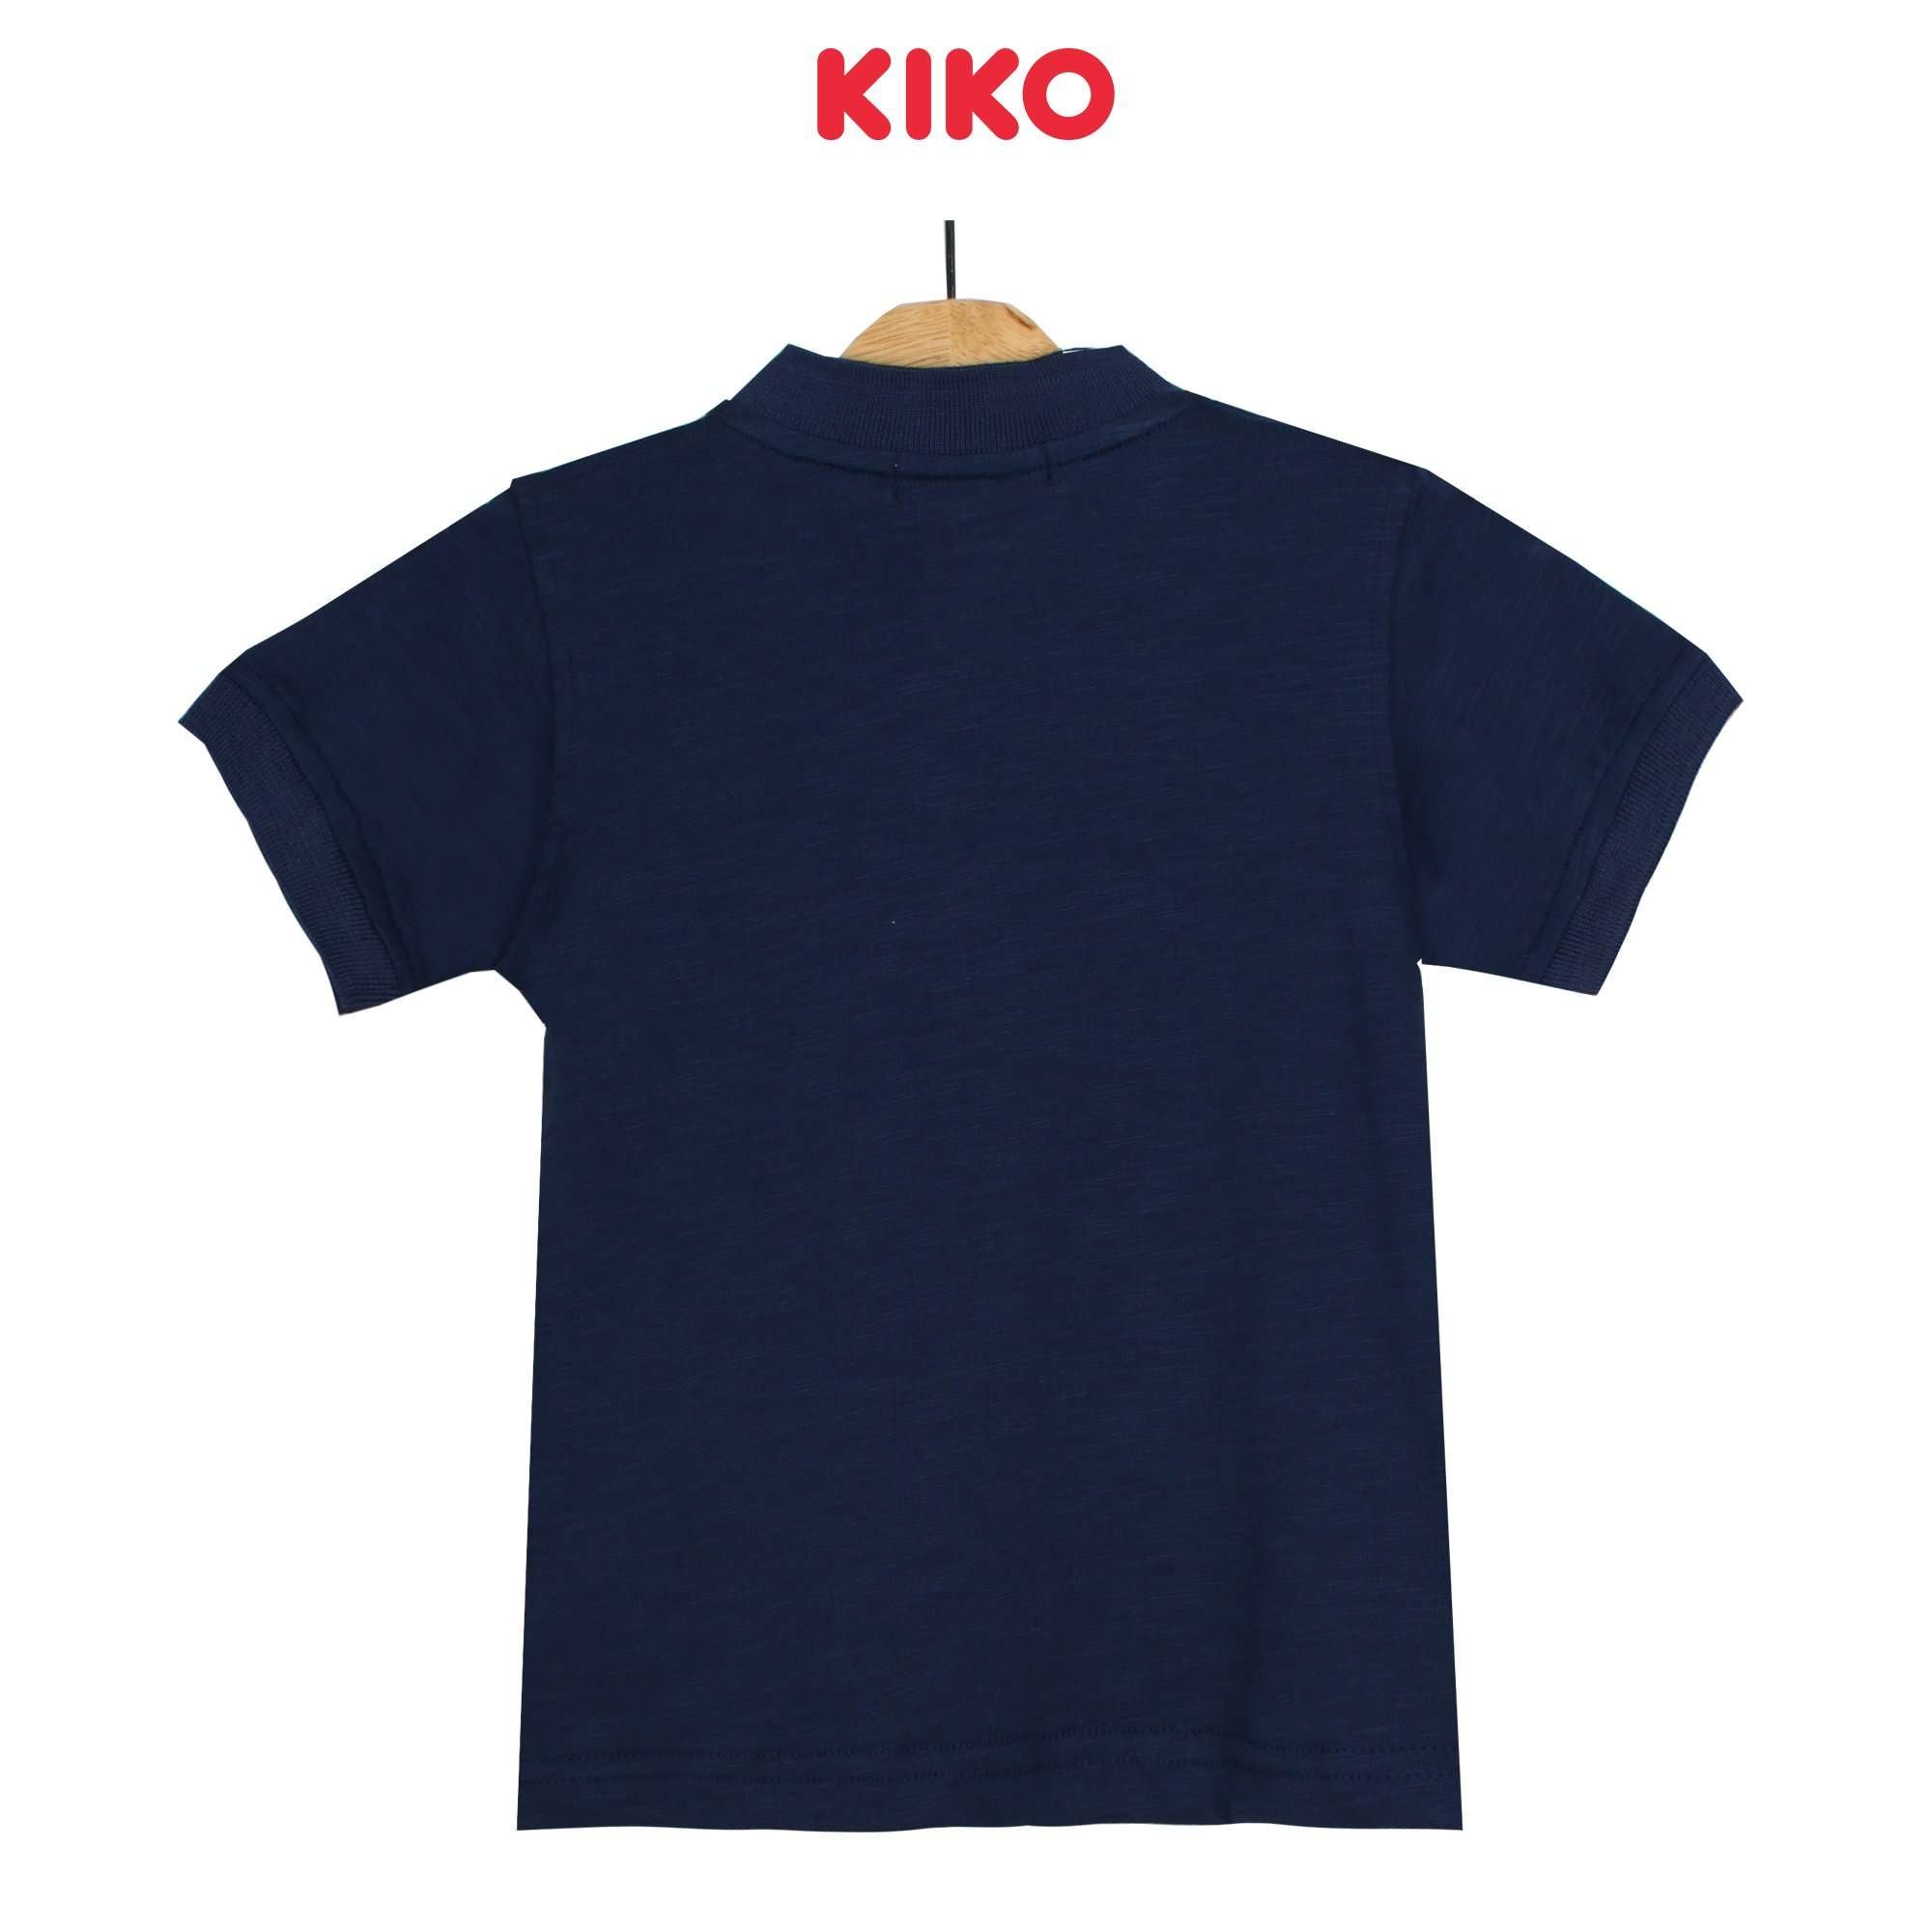 KIKO Boy Short Sleeve Collar Tee -Blue 130091-122 : Buy KIKO online at CMG.MY